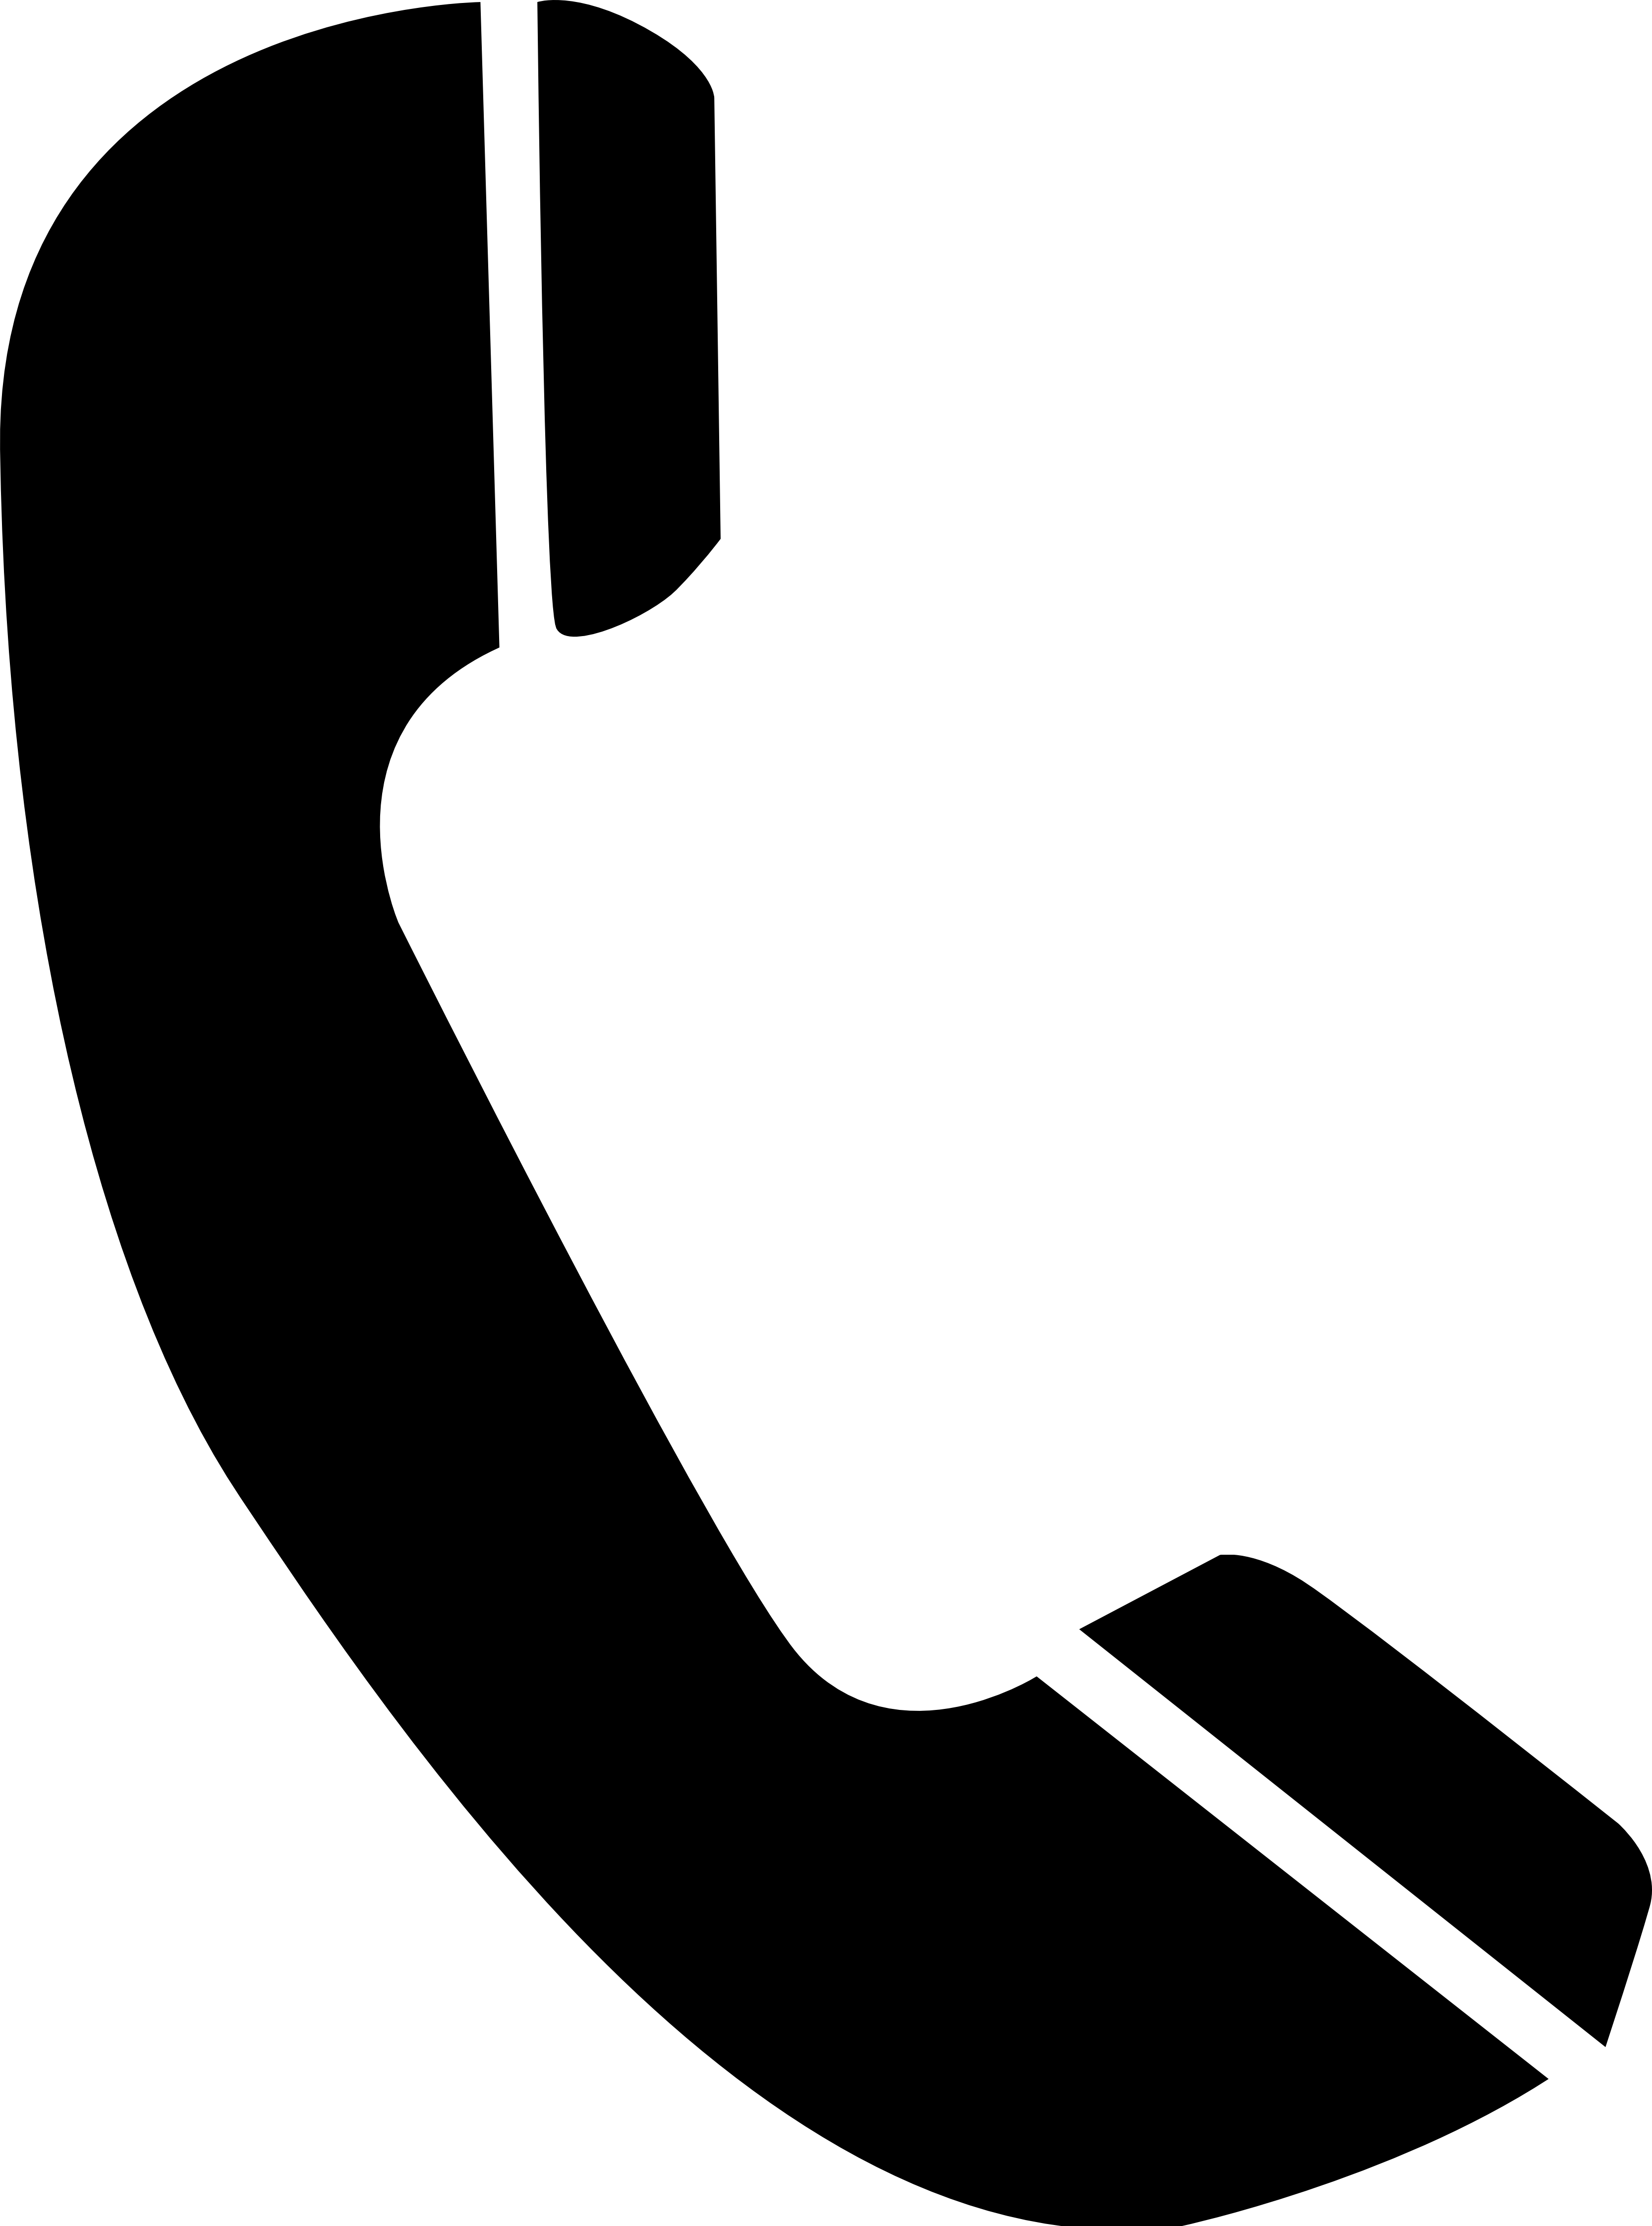 Telephone PNG